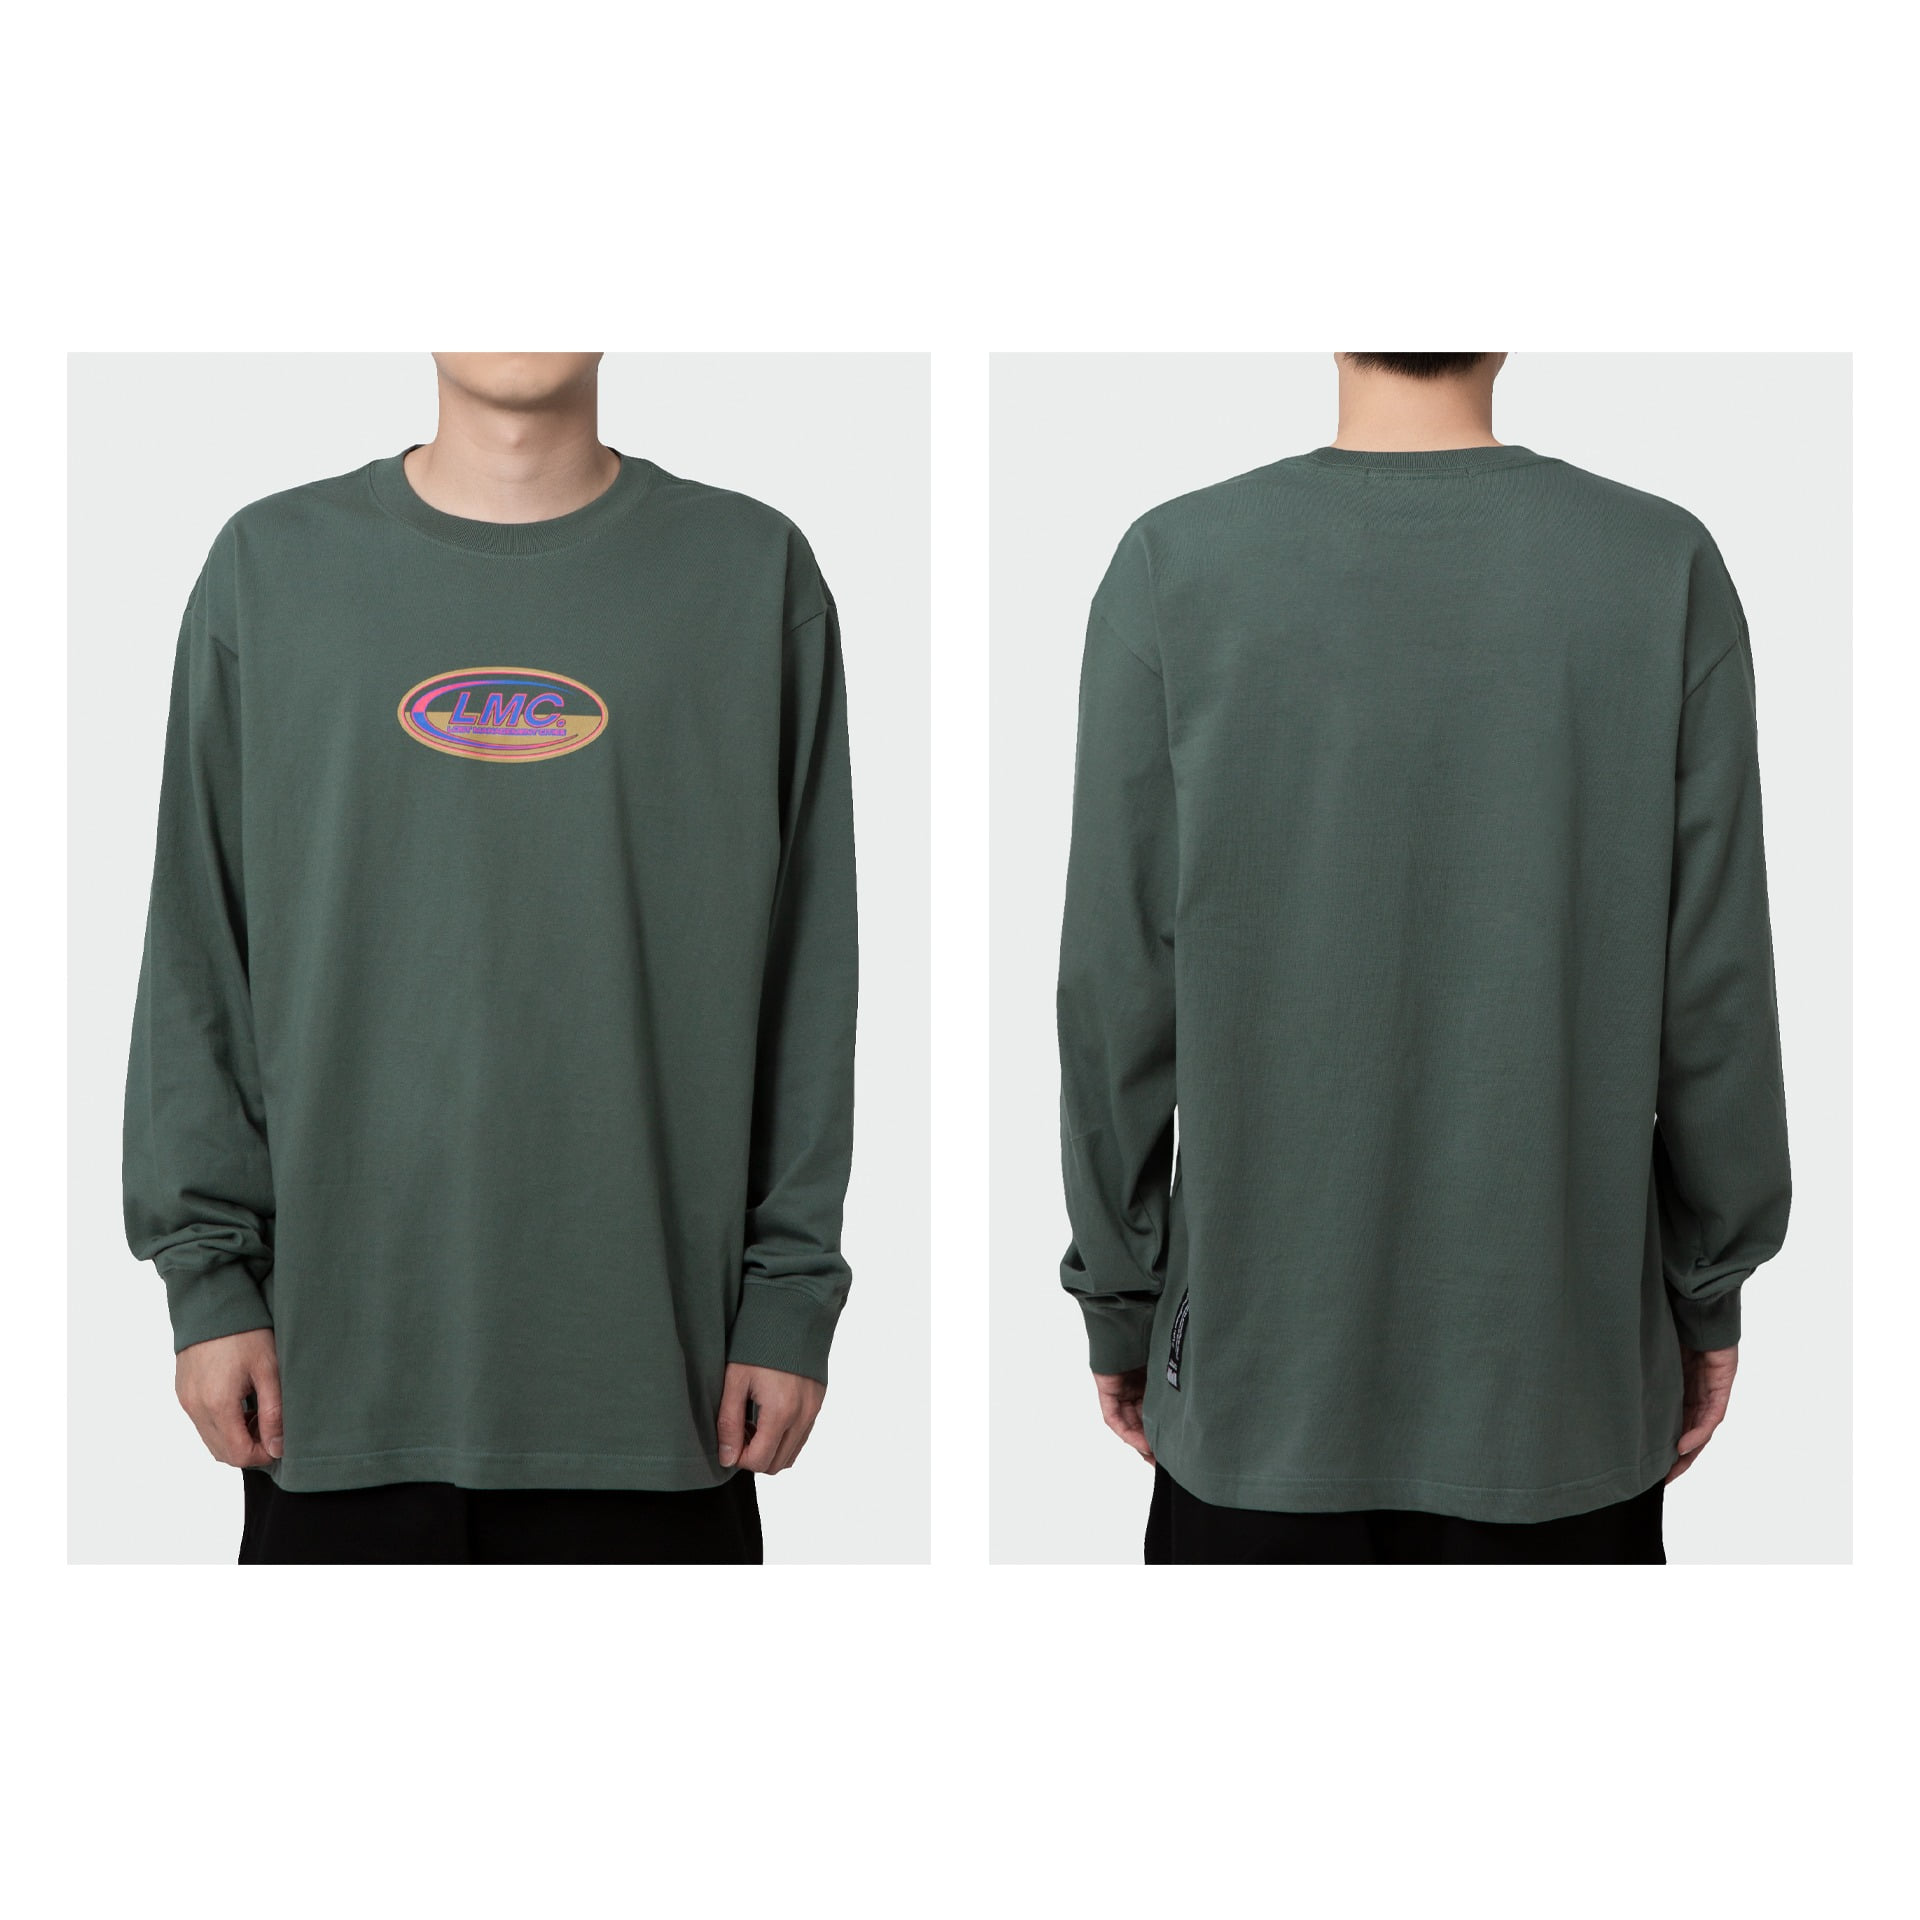 LMC CO LOGO LONG SLV TEE olive